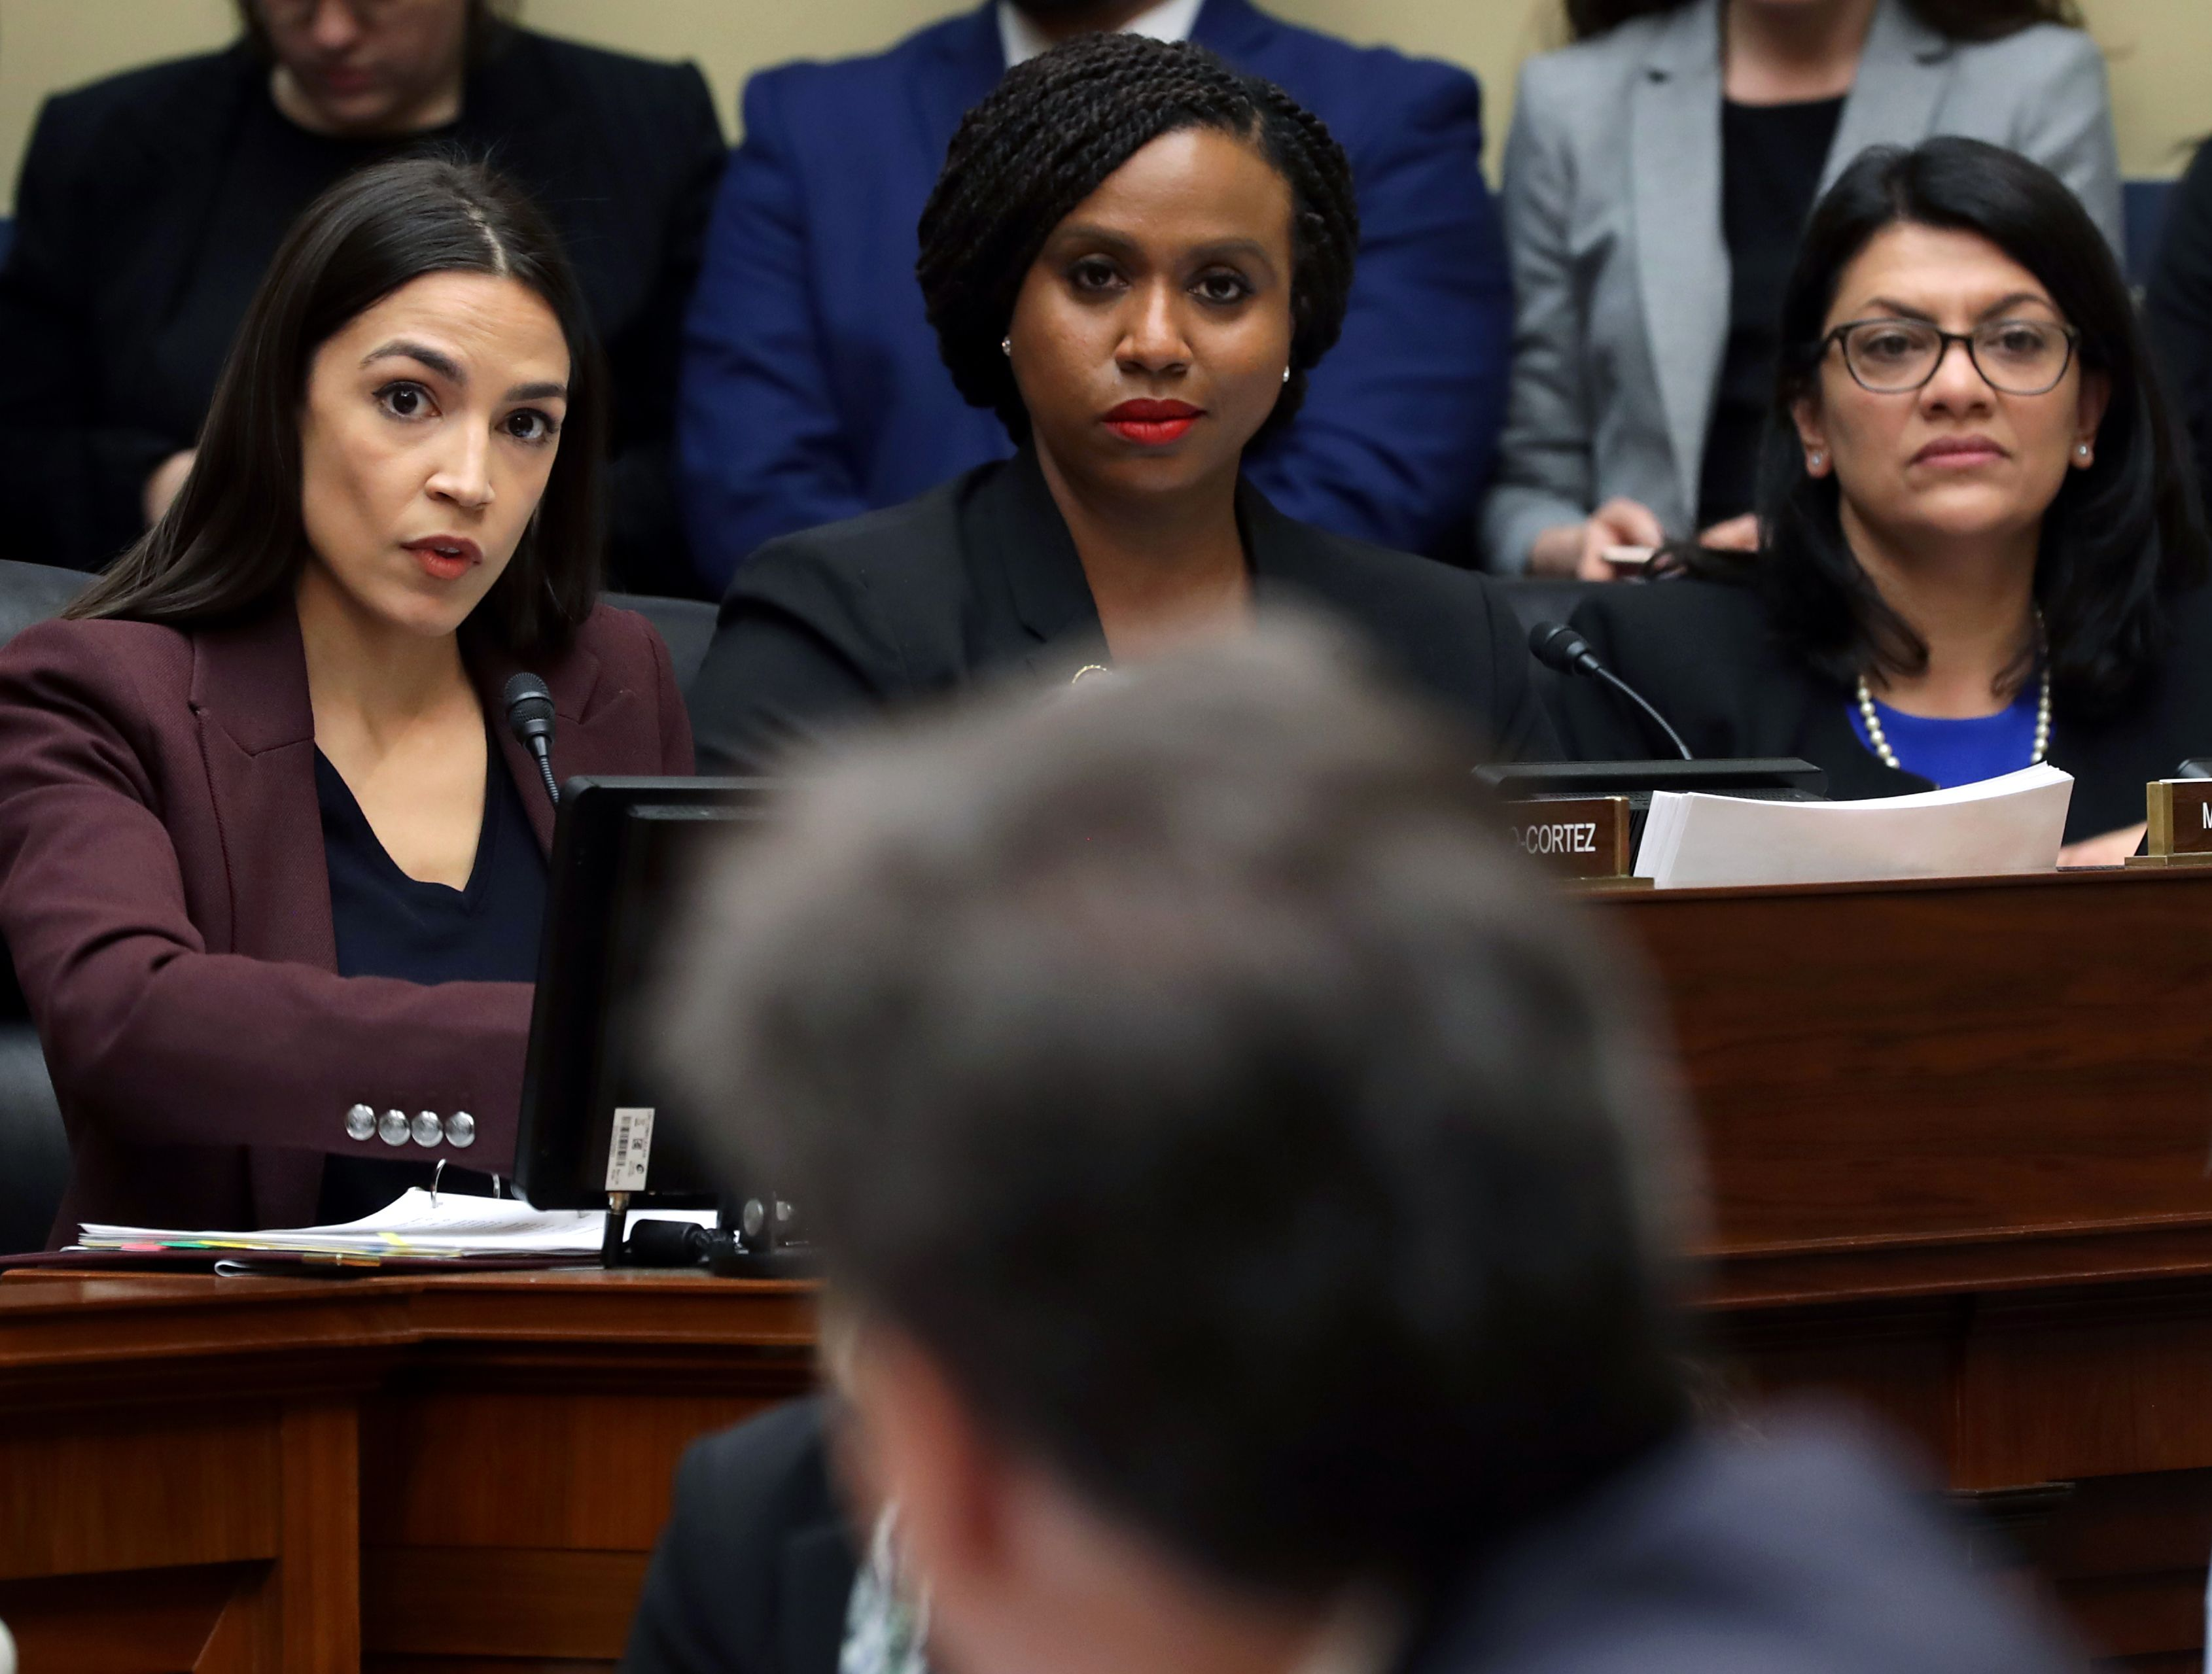 Trump Tweeted That Progressive Congresswomen Should 'Go Back' to Their 'Crime Infested' Countries